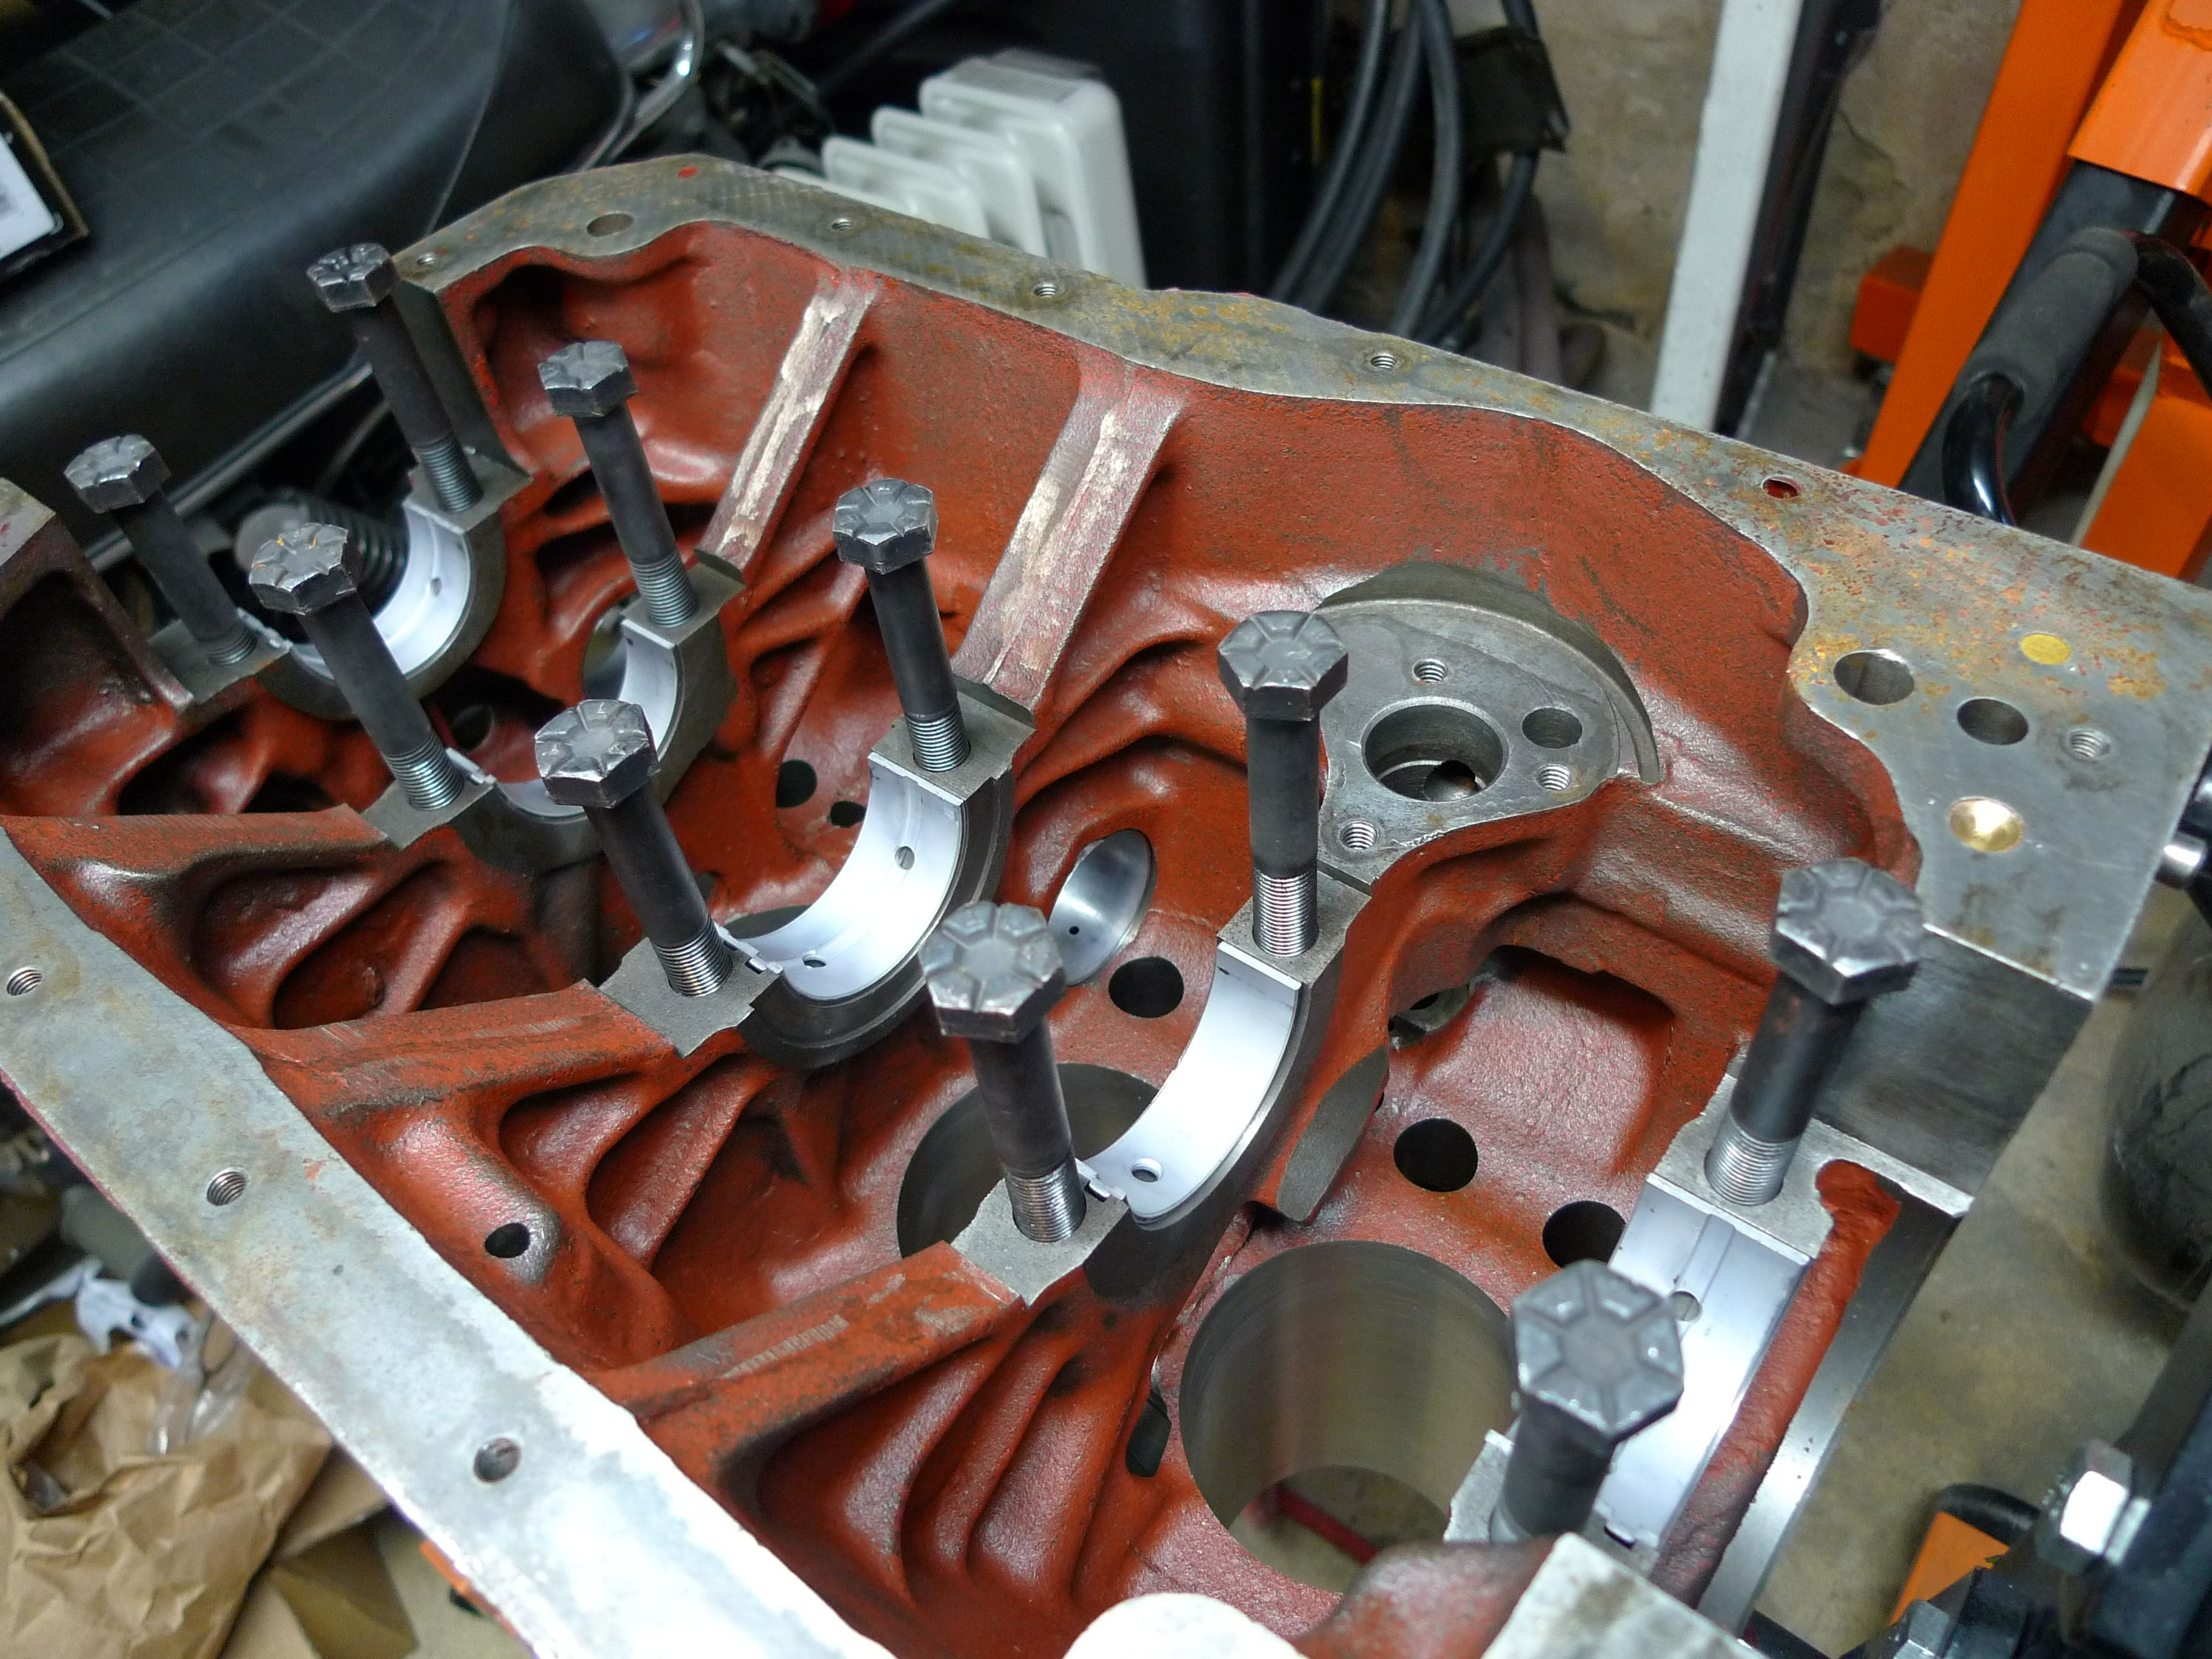 1977 Mgb Roadster Part 2 Ford 8n No Oil Pressure Theres Assembly Lube In Place At This Point Because I Was Preparing To Plastigauge The Mains Prior Installation And Task Should Be Done With